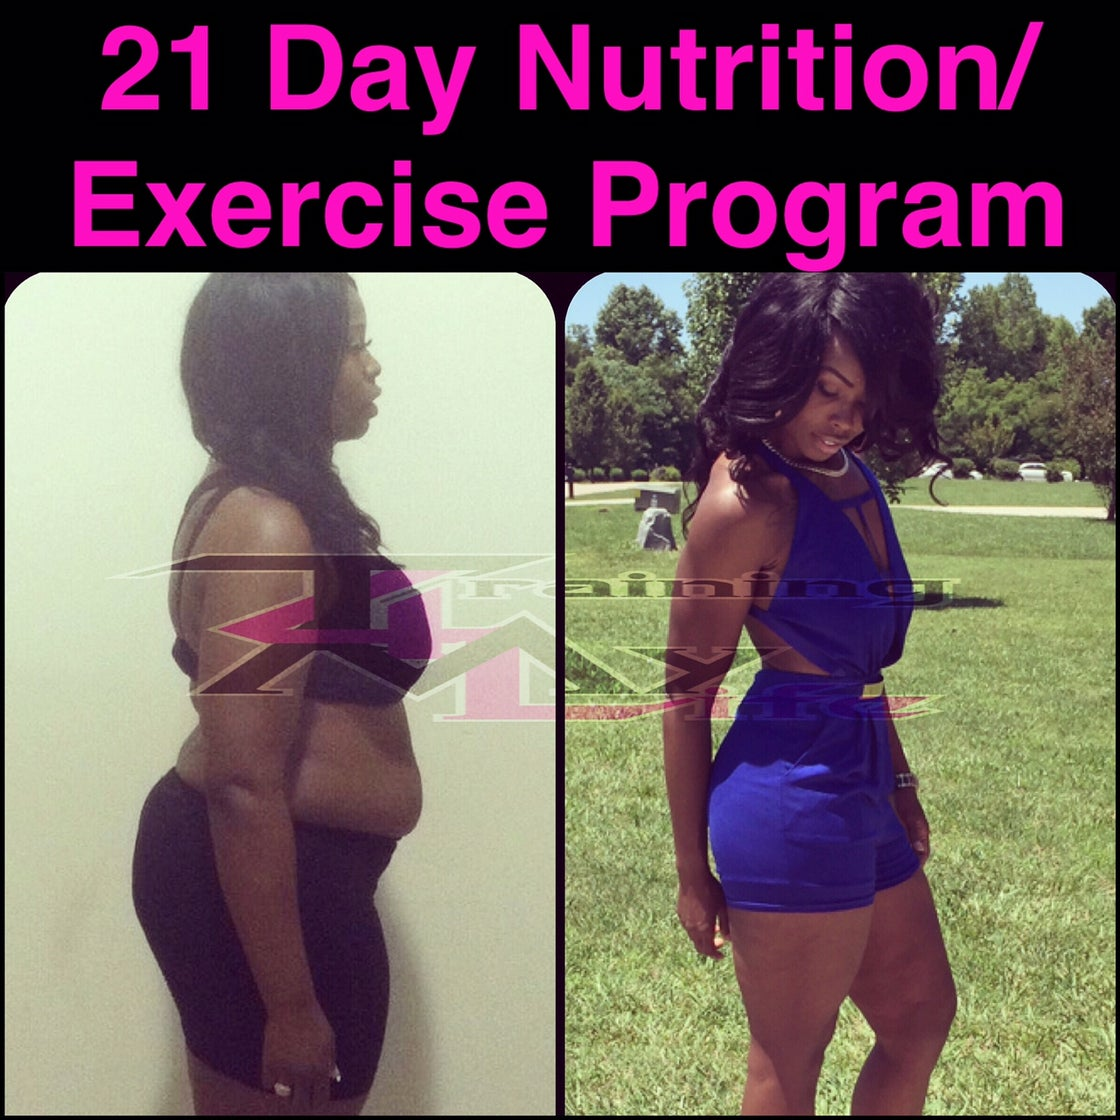 Image of 21 Day Nutrition/Exercise Guide